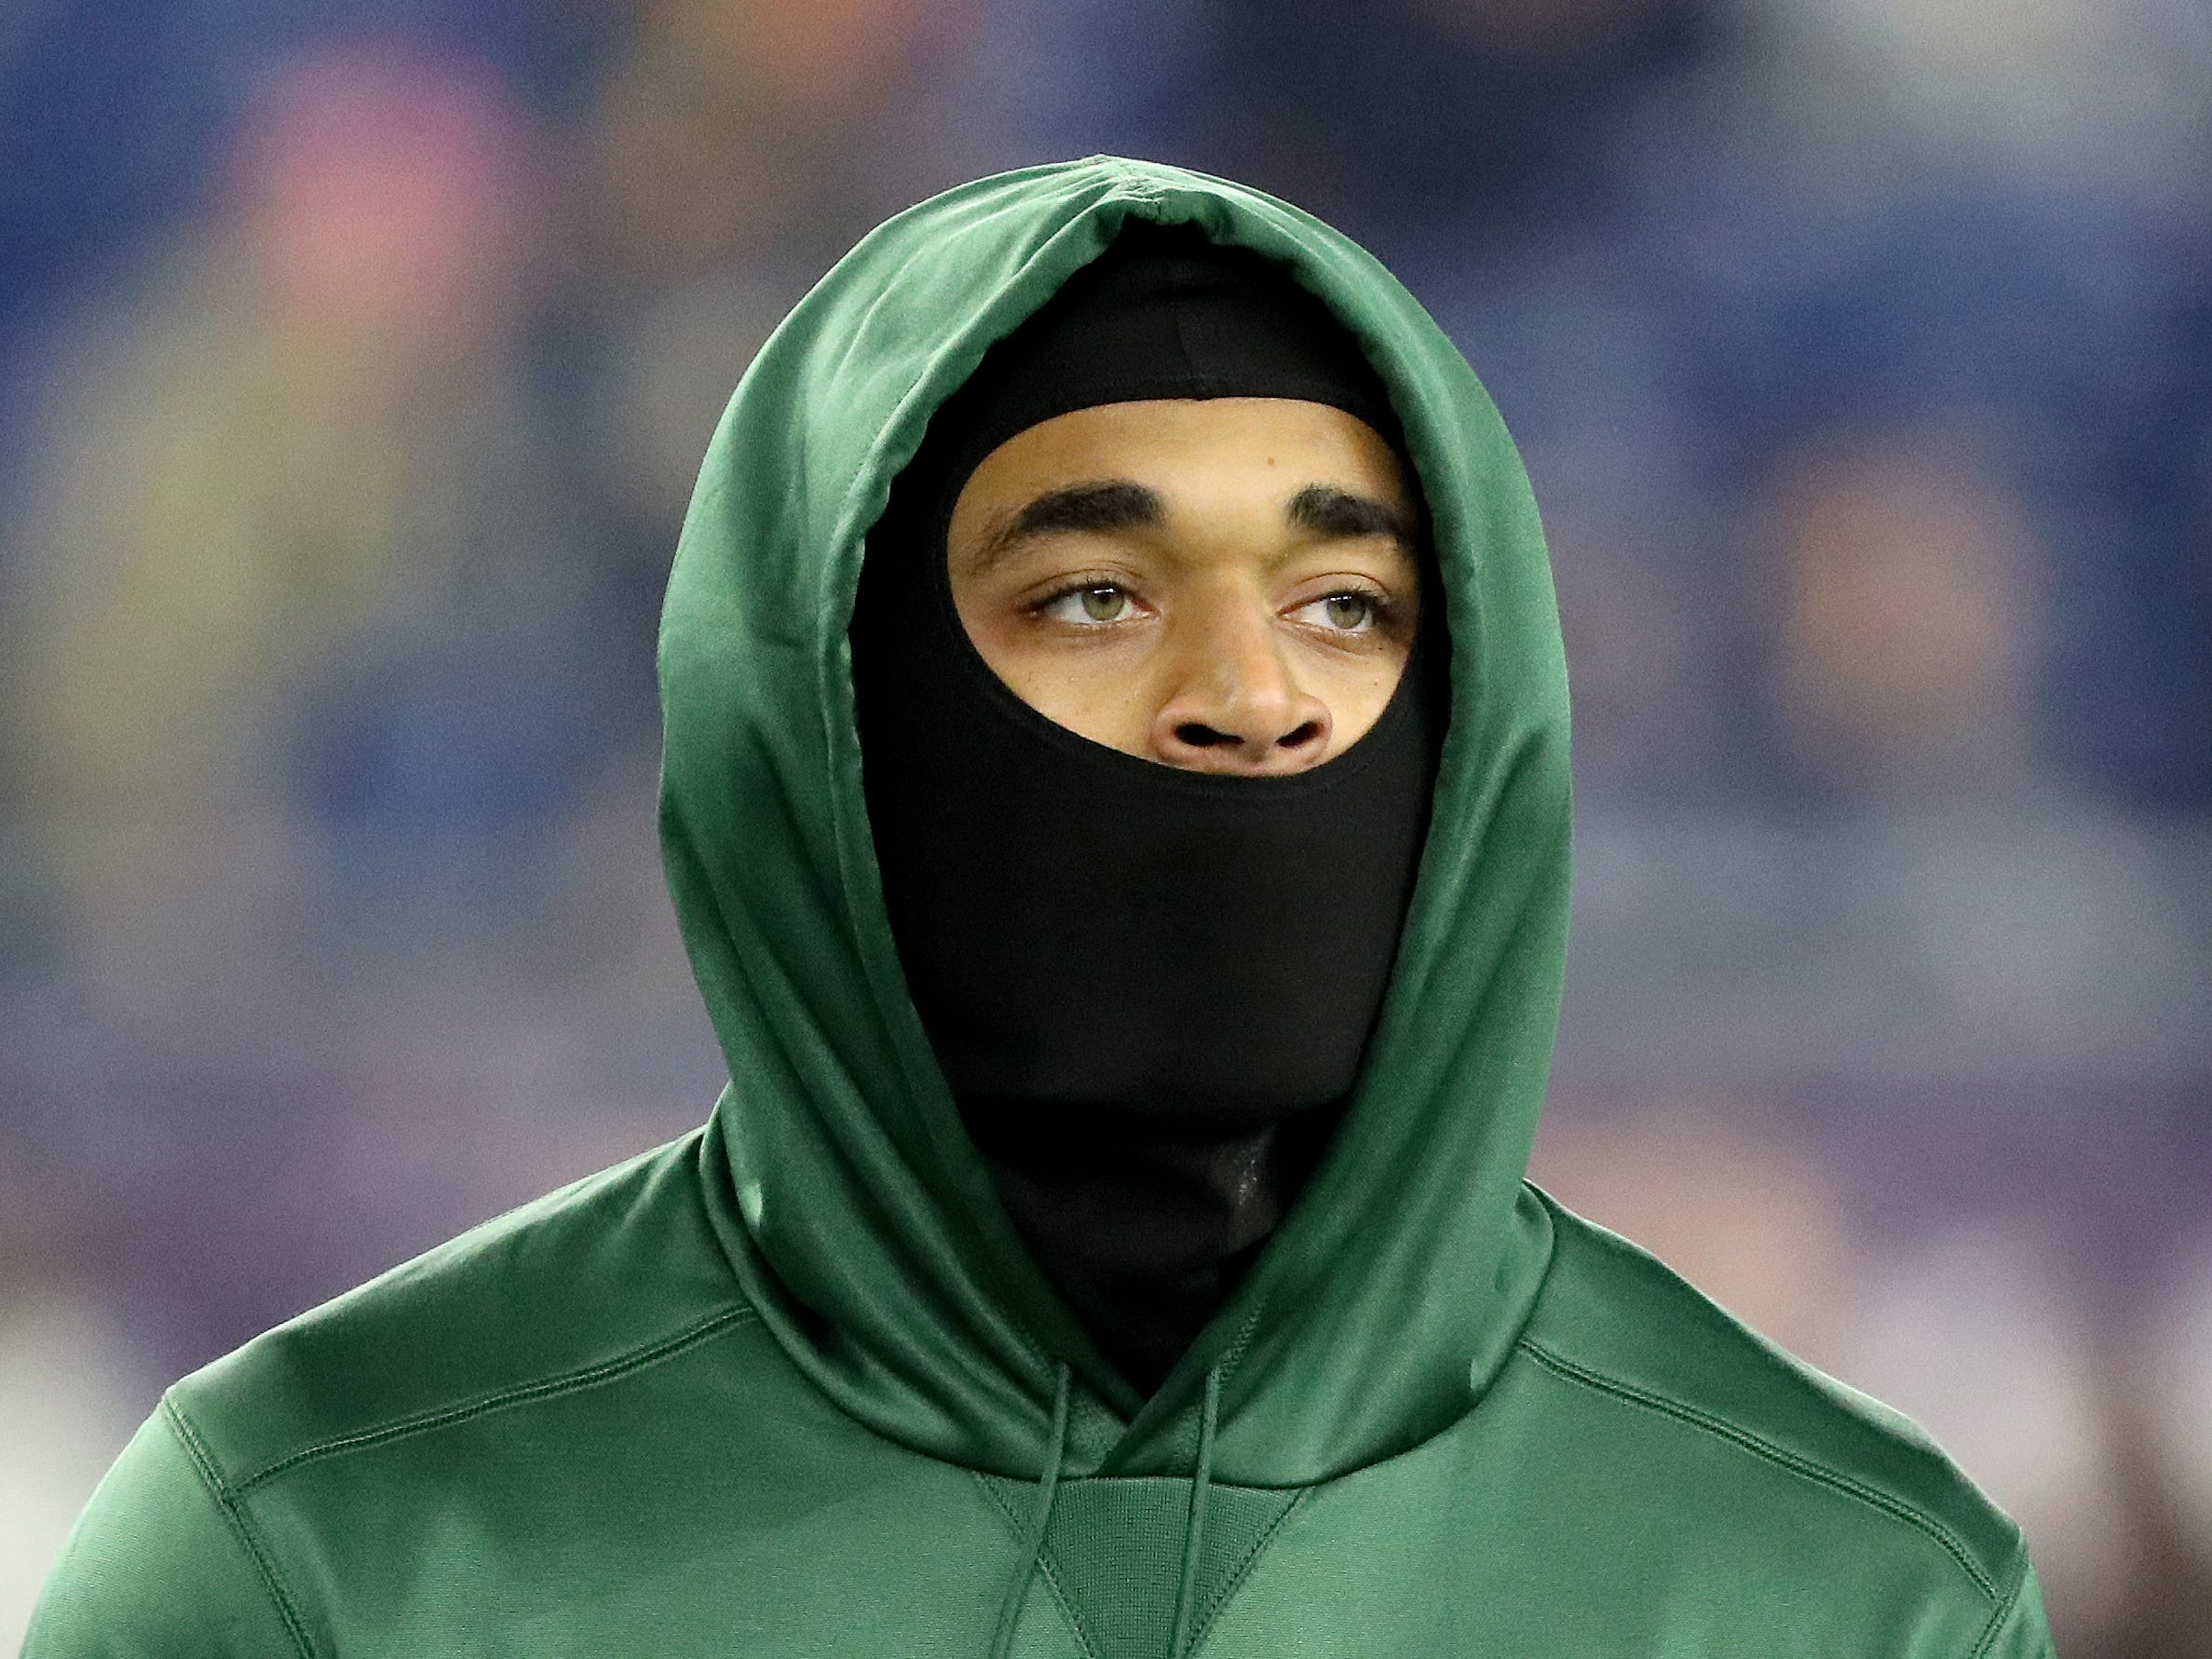 Green Bay Packers cornerback Jaire Alexander (23) walks the field before the game against the New England Patriots Sunday, November 4, 2018 at Gillette Stadium in Foxborough, Mass.